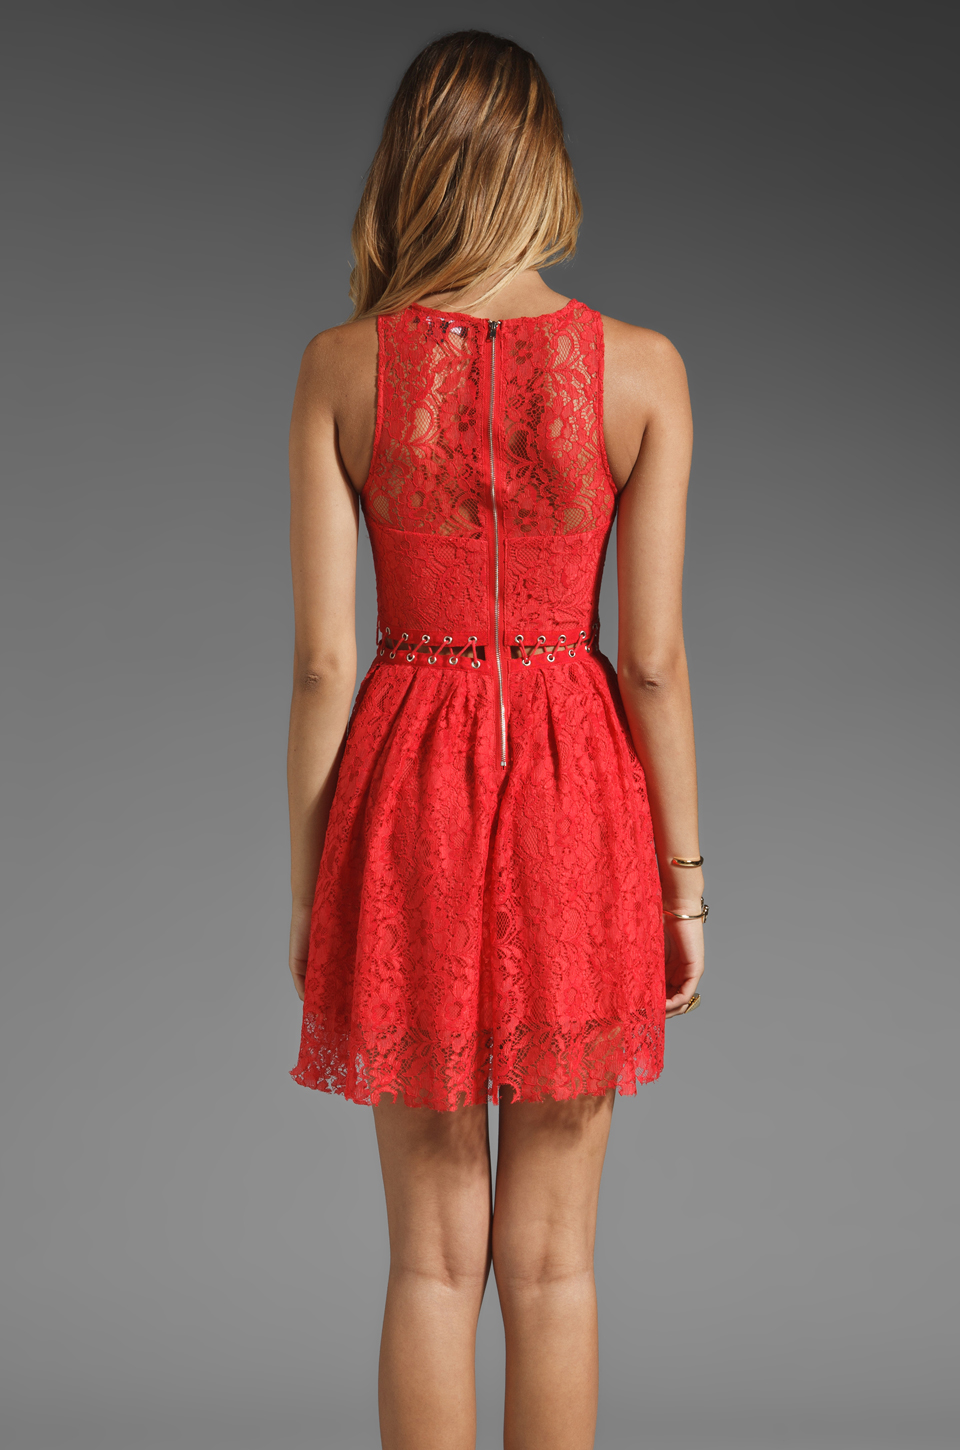 Style Stalker Love Me Do Lace Up Dress in Coral Red